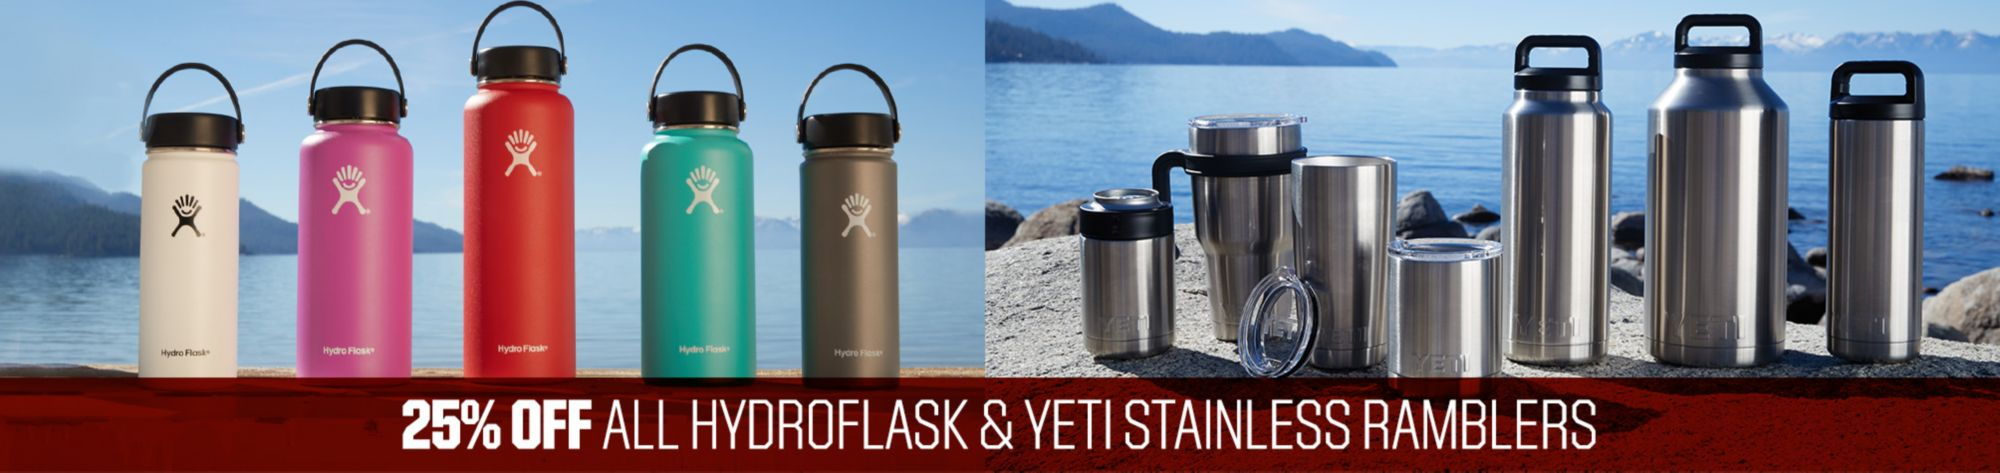 Find Your Favorite Hydro Flask